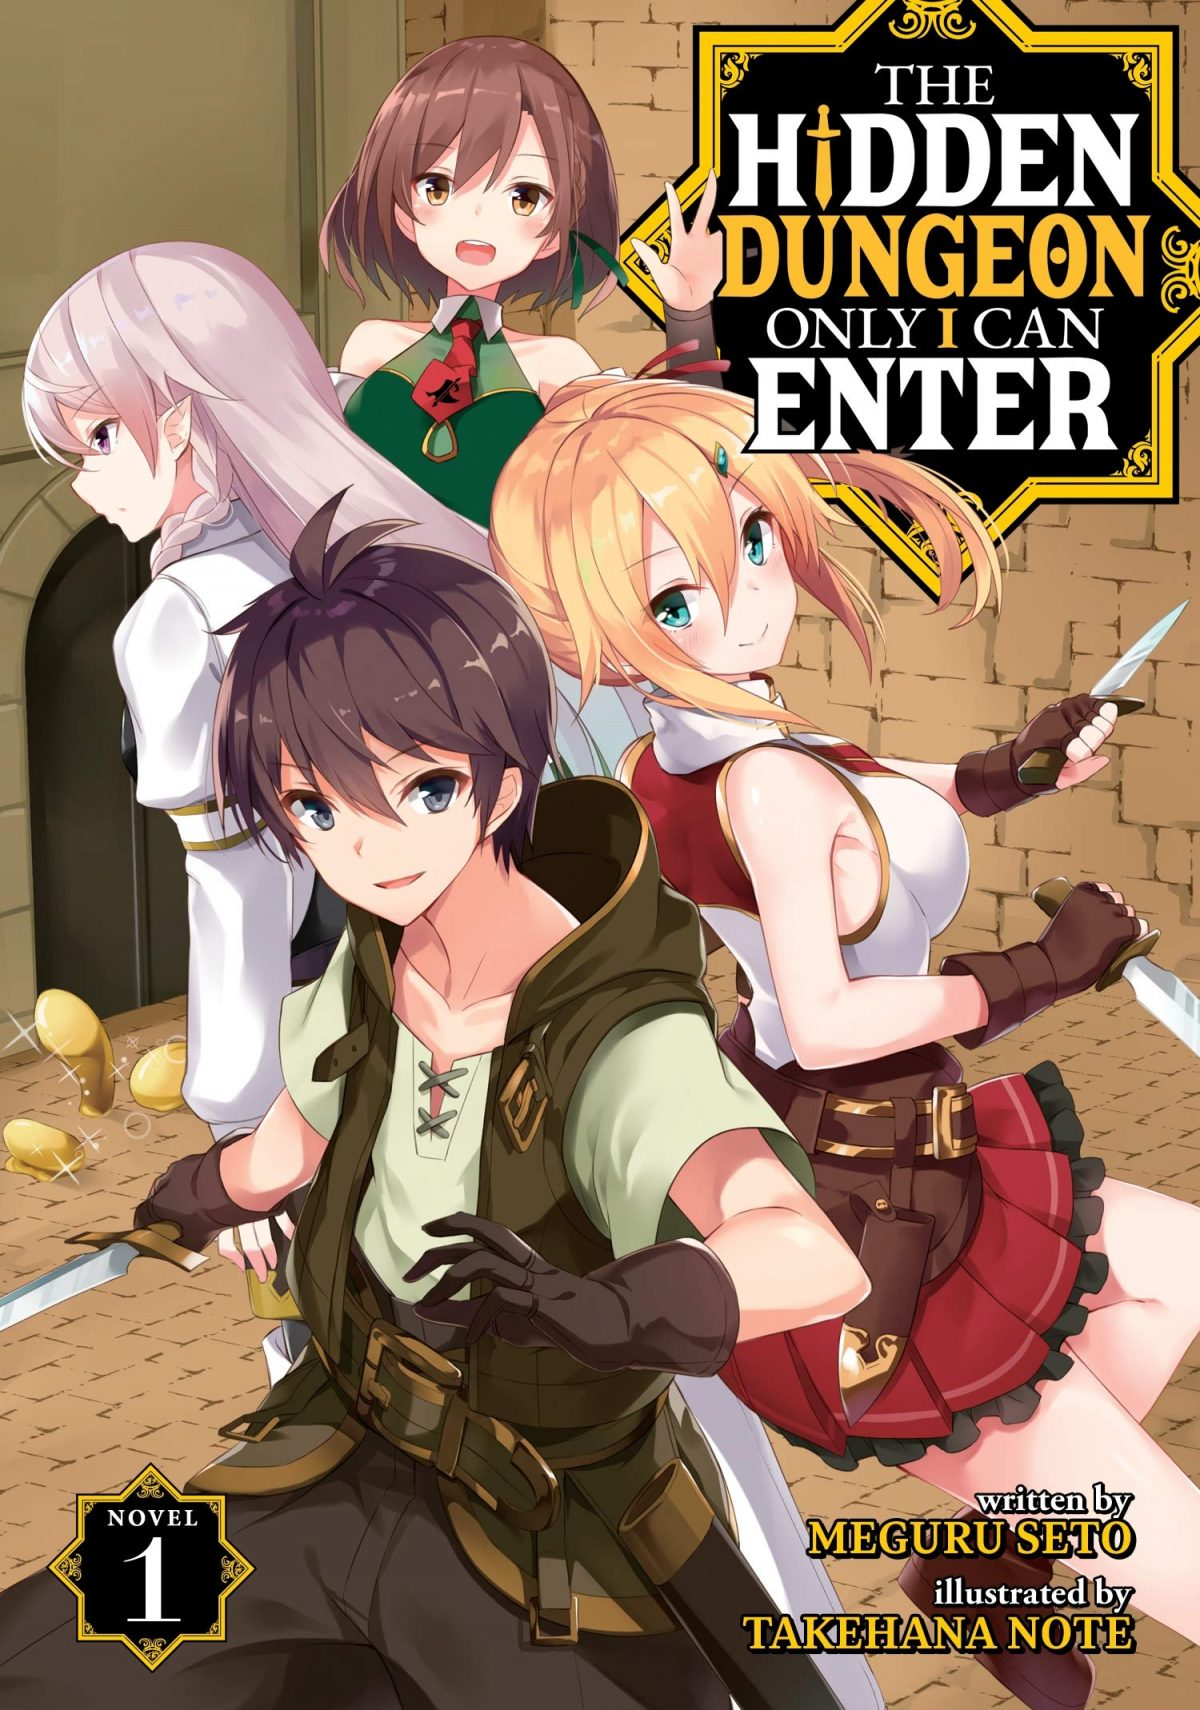 ▷ ORE DAKE Haireru Kakushi DUNGEON: mazmorras y waifus ✅ Las novelas ligeras Ore Dake Haireru Kakushi Dungeon ✅ Kossori Kitaete Sekai Saikyou ⭐ ¿Dónde comprar The Hidden Dungeon Only I Can Enter?